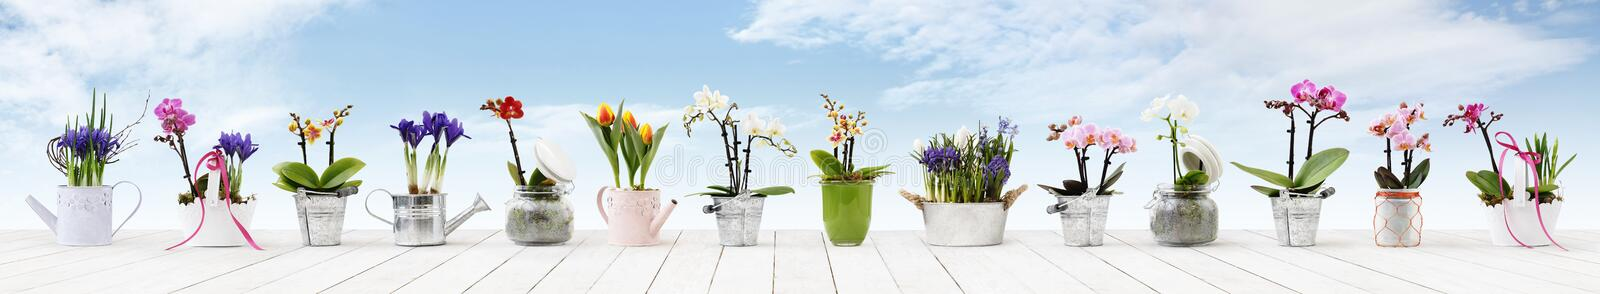 Flowers in pots set isolated on white wood table and sky background, web banner with copy space for florist shop royalty free stock photography